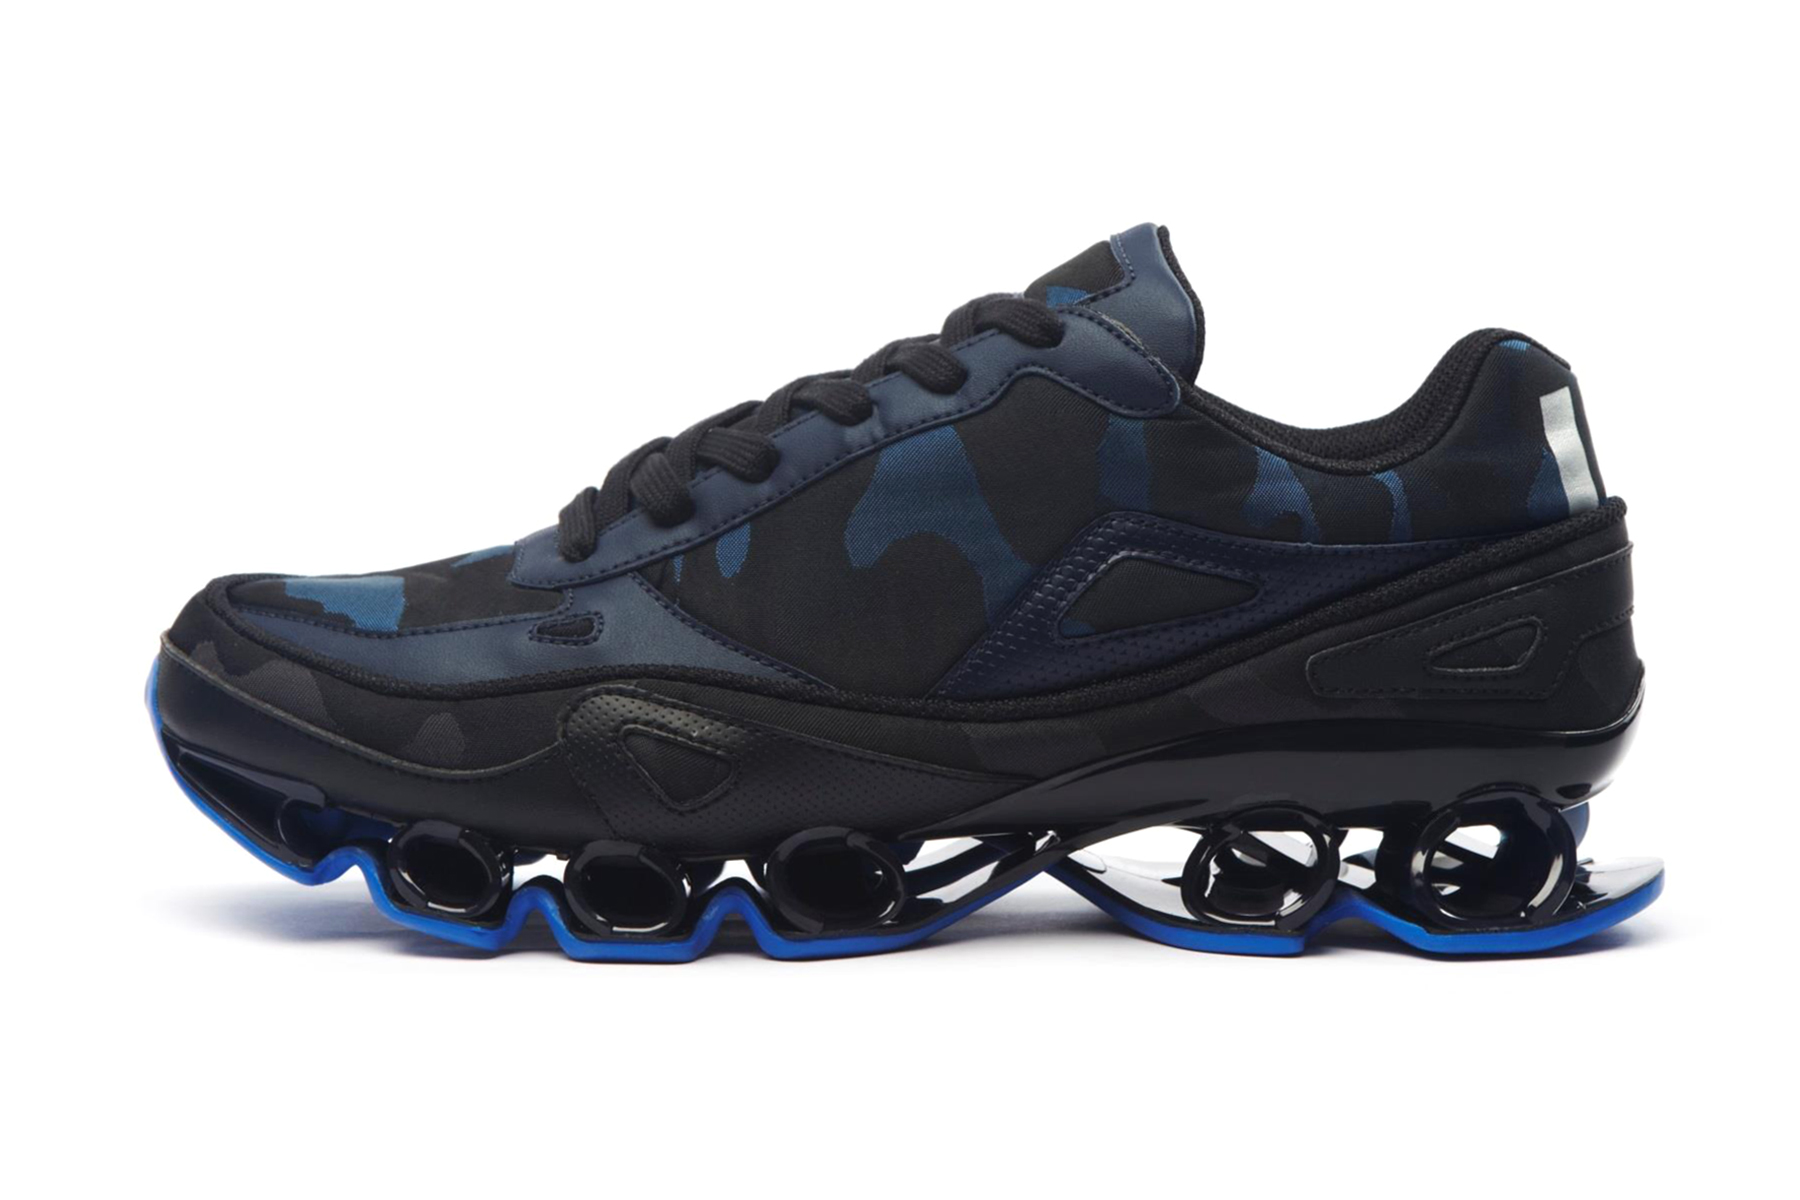 Raf Simons for adidas 2014 Fall/Winter Collection